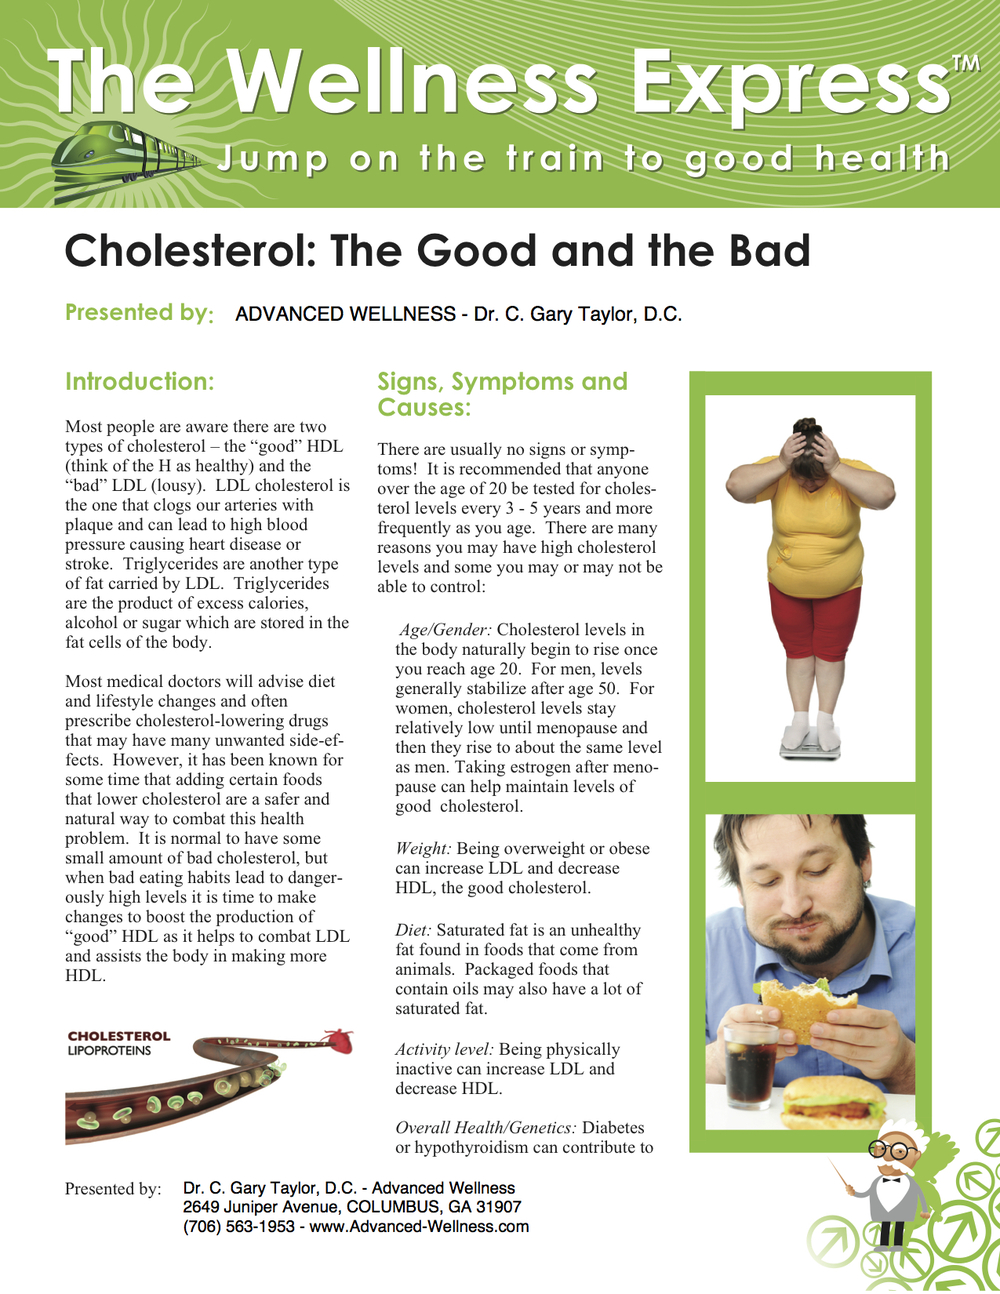 Weekly Newsletter: Cholesterol: The Good and the Bad